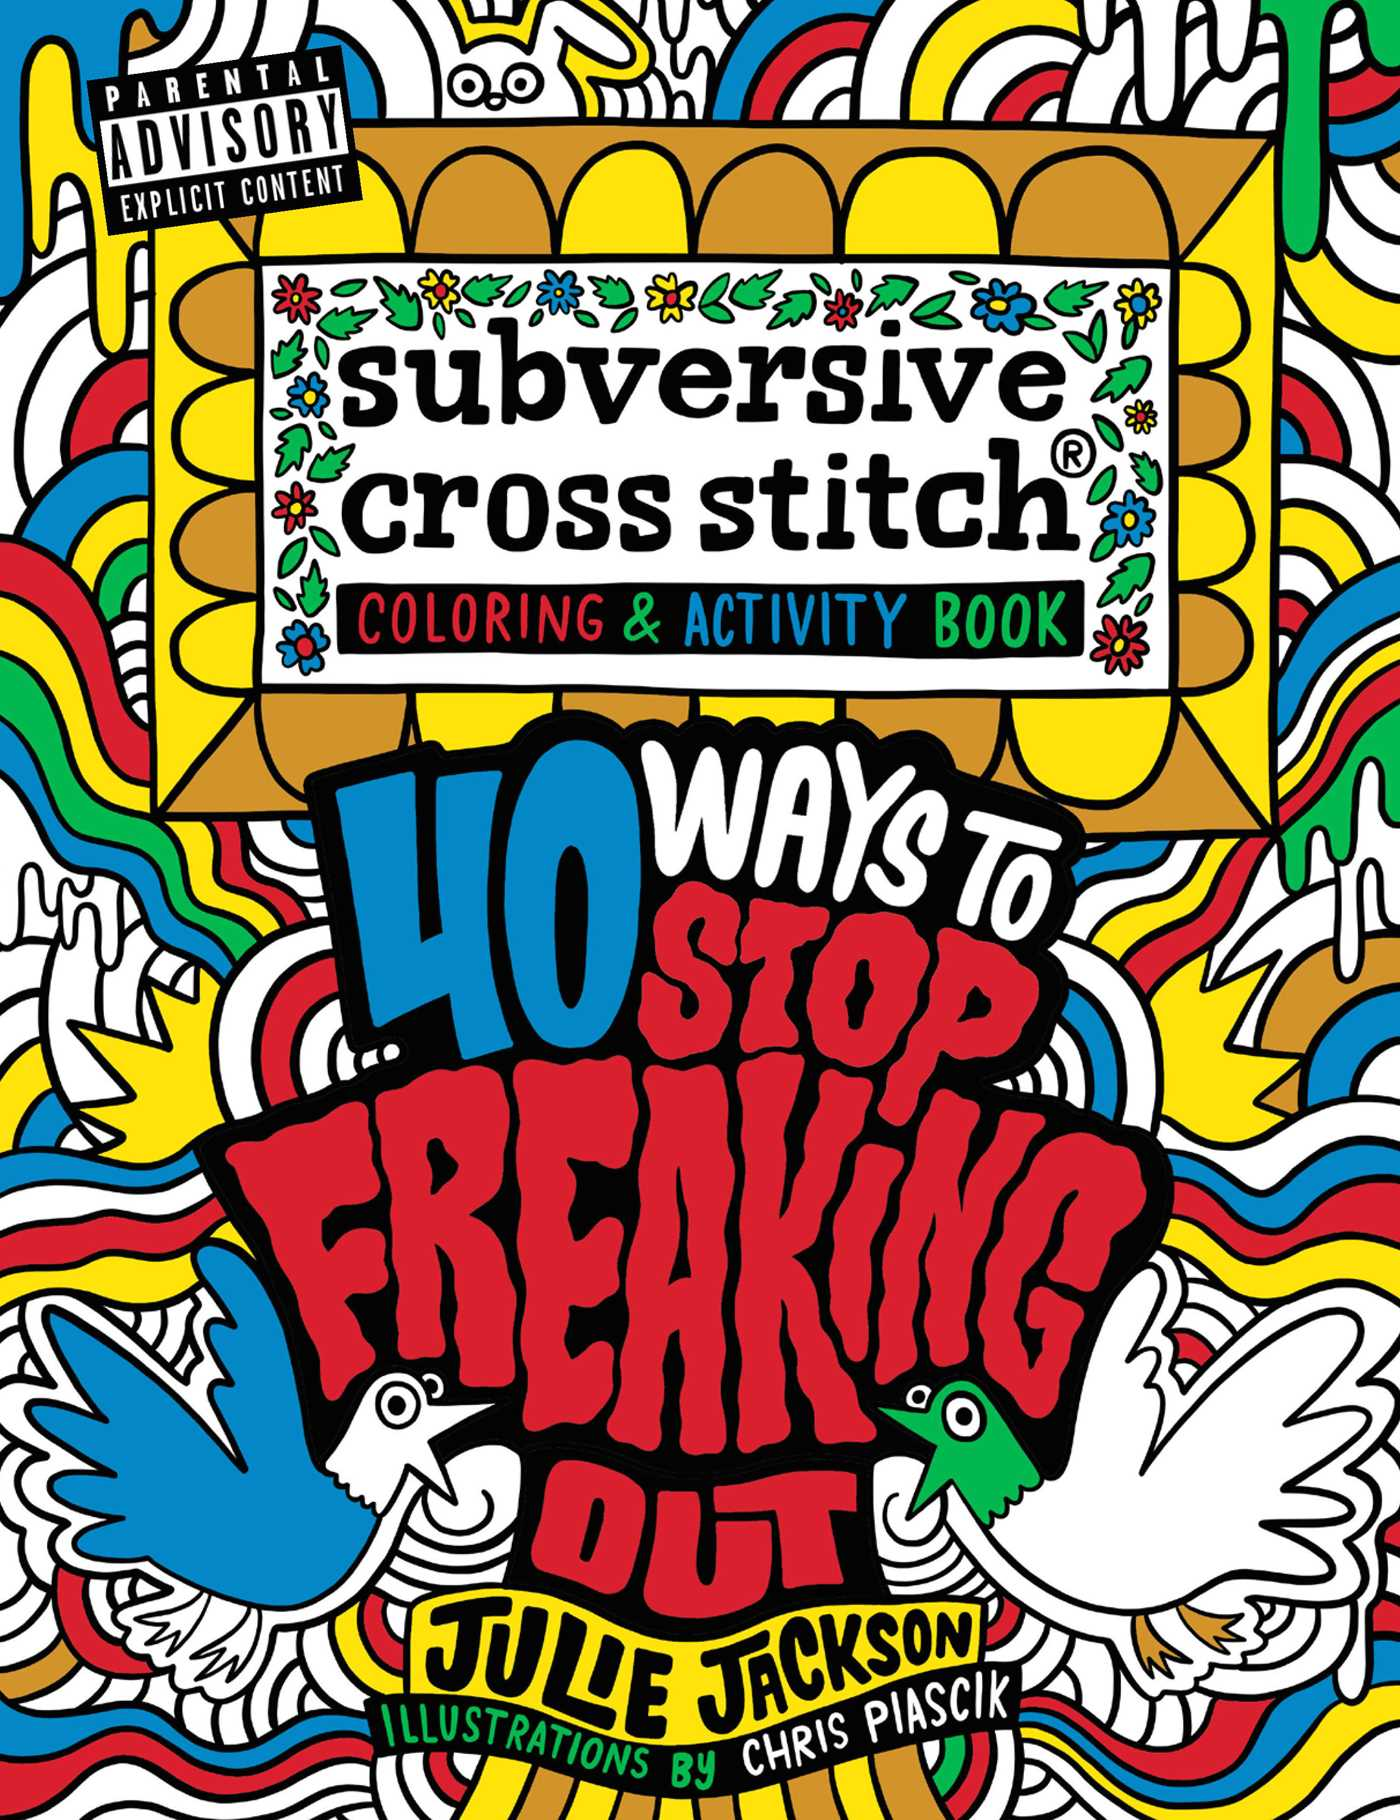 subversive cross stitch coloring and activity book 9781681881799 hr